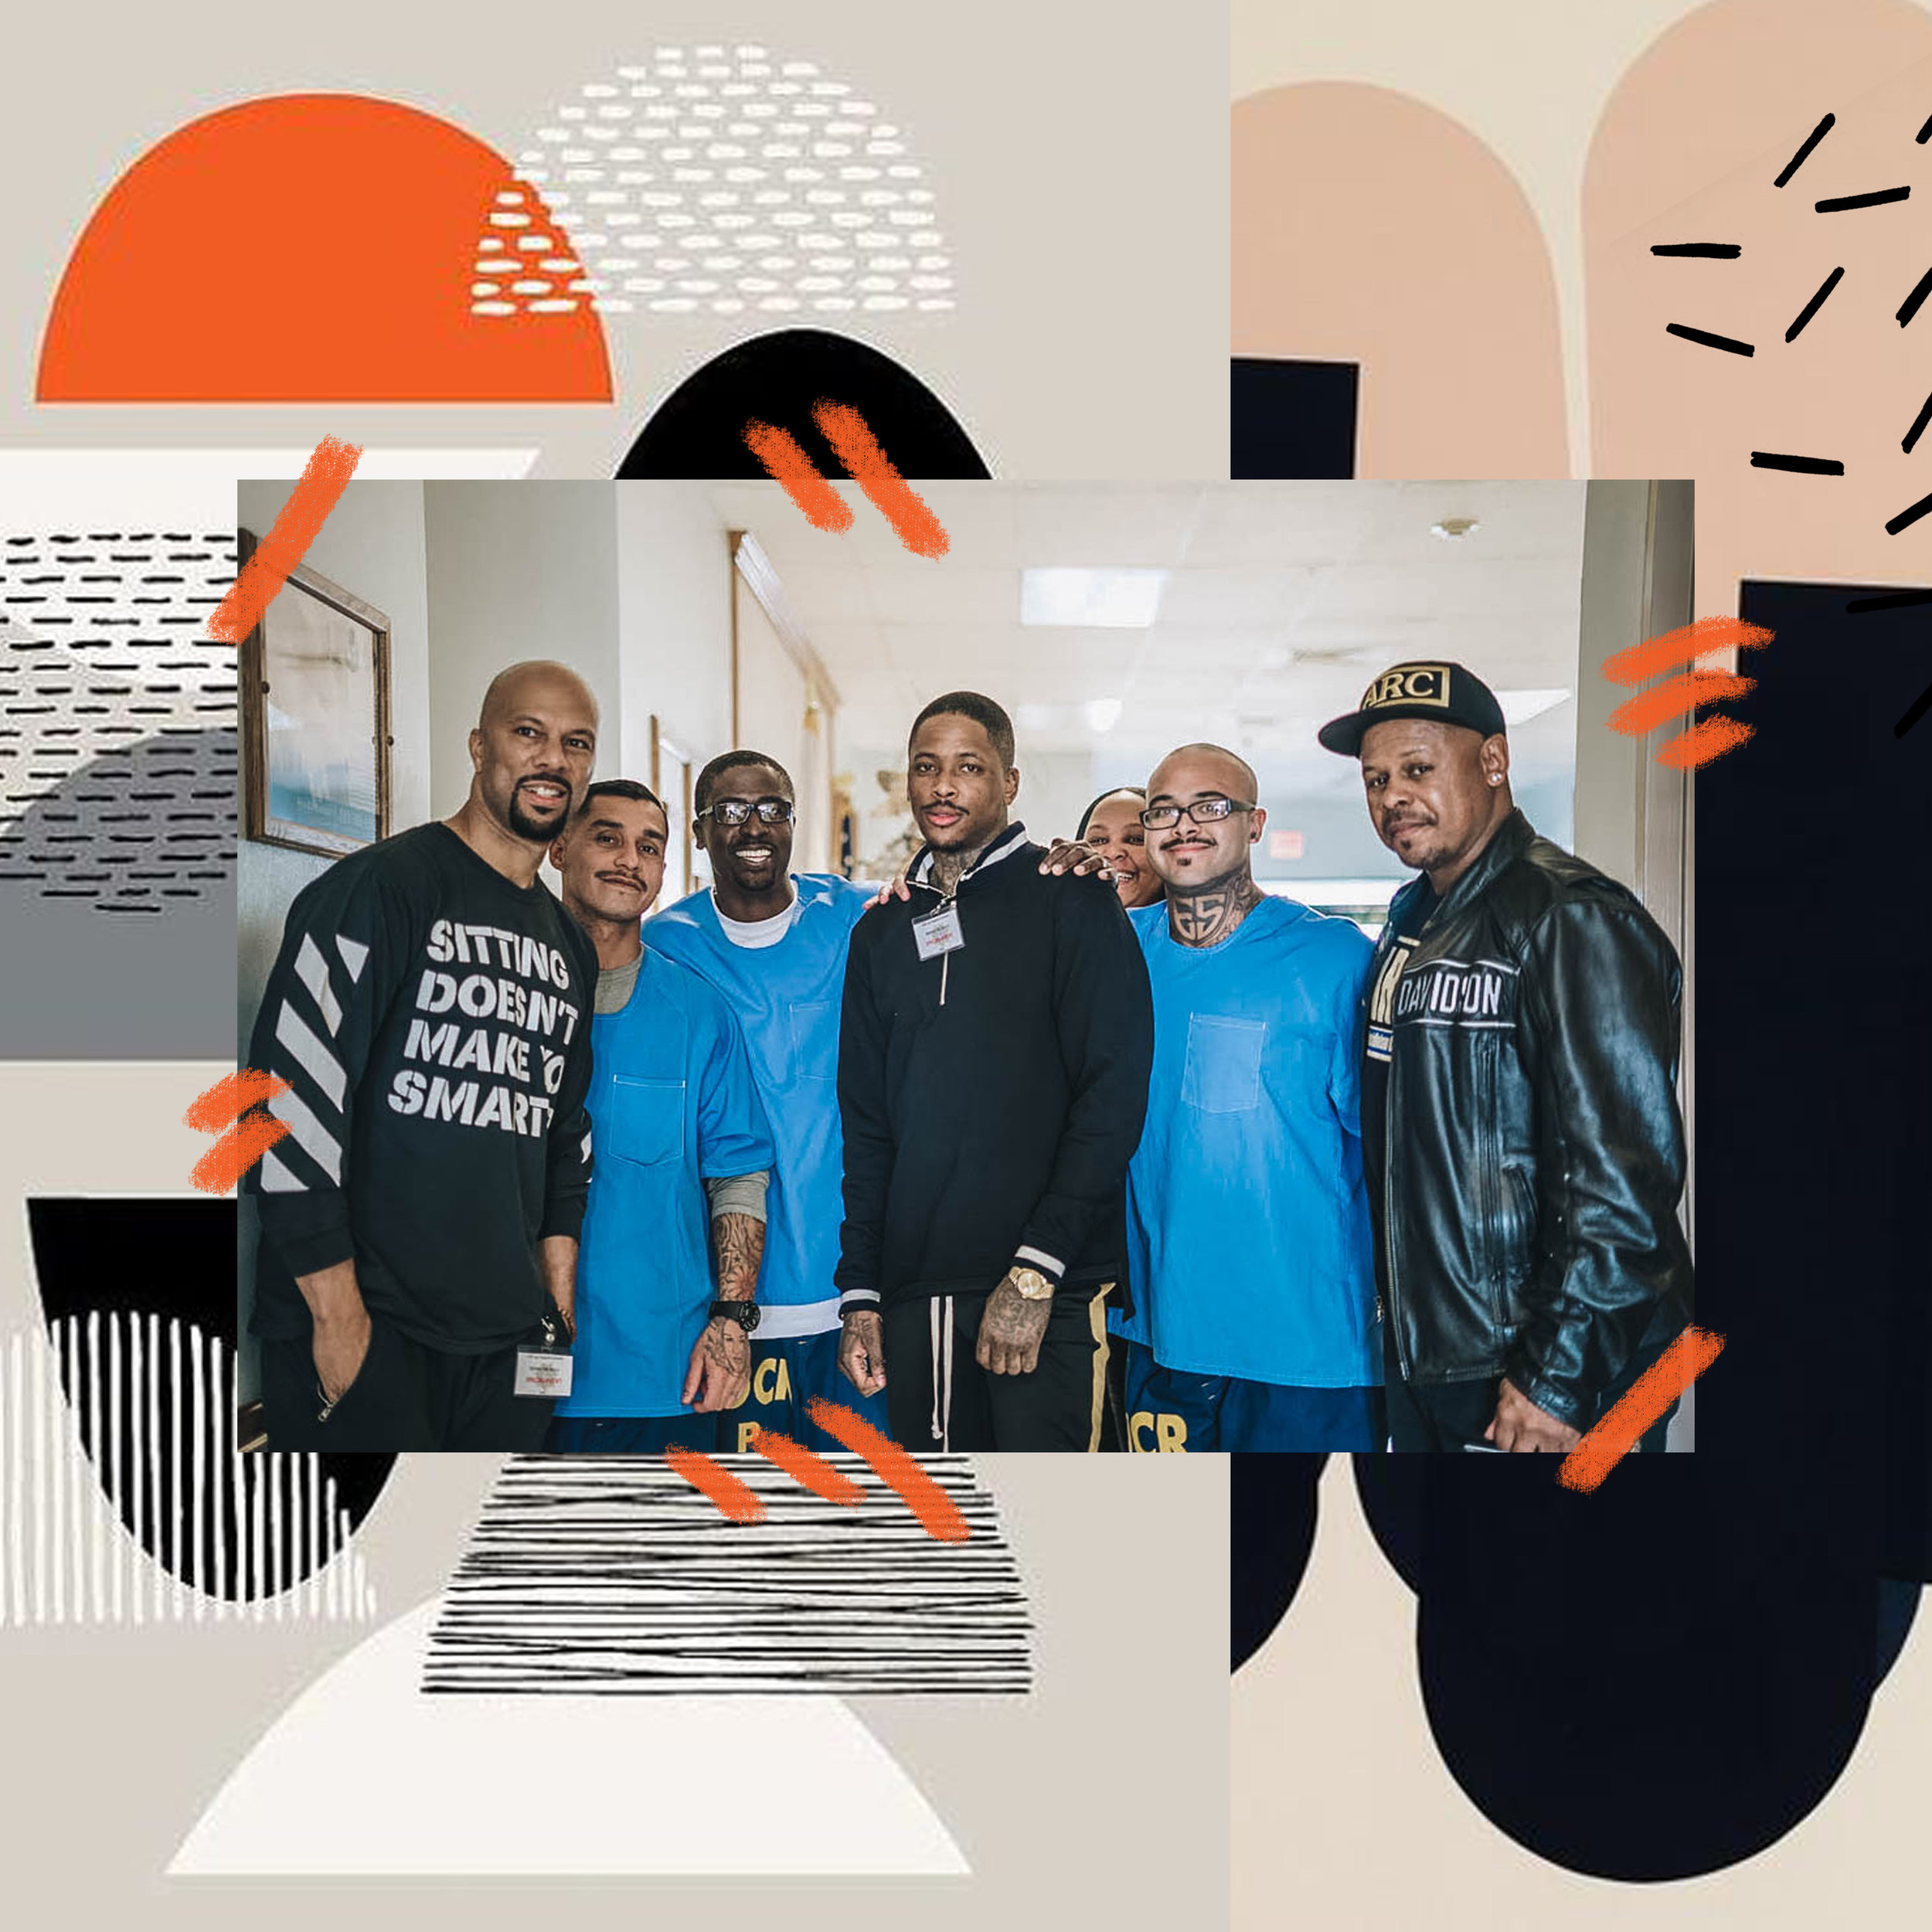 TEAM COMMON + IMAGINE JUSTICE VISIT PRISON